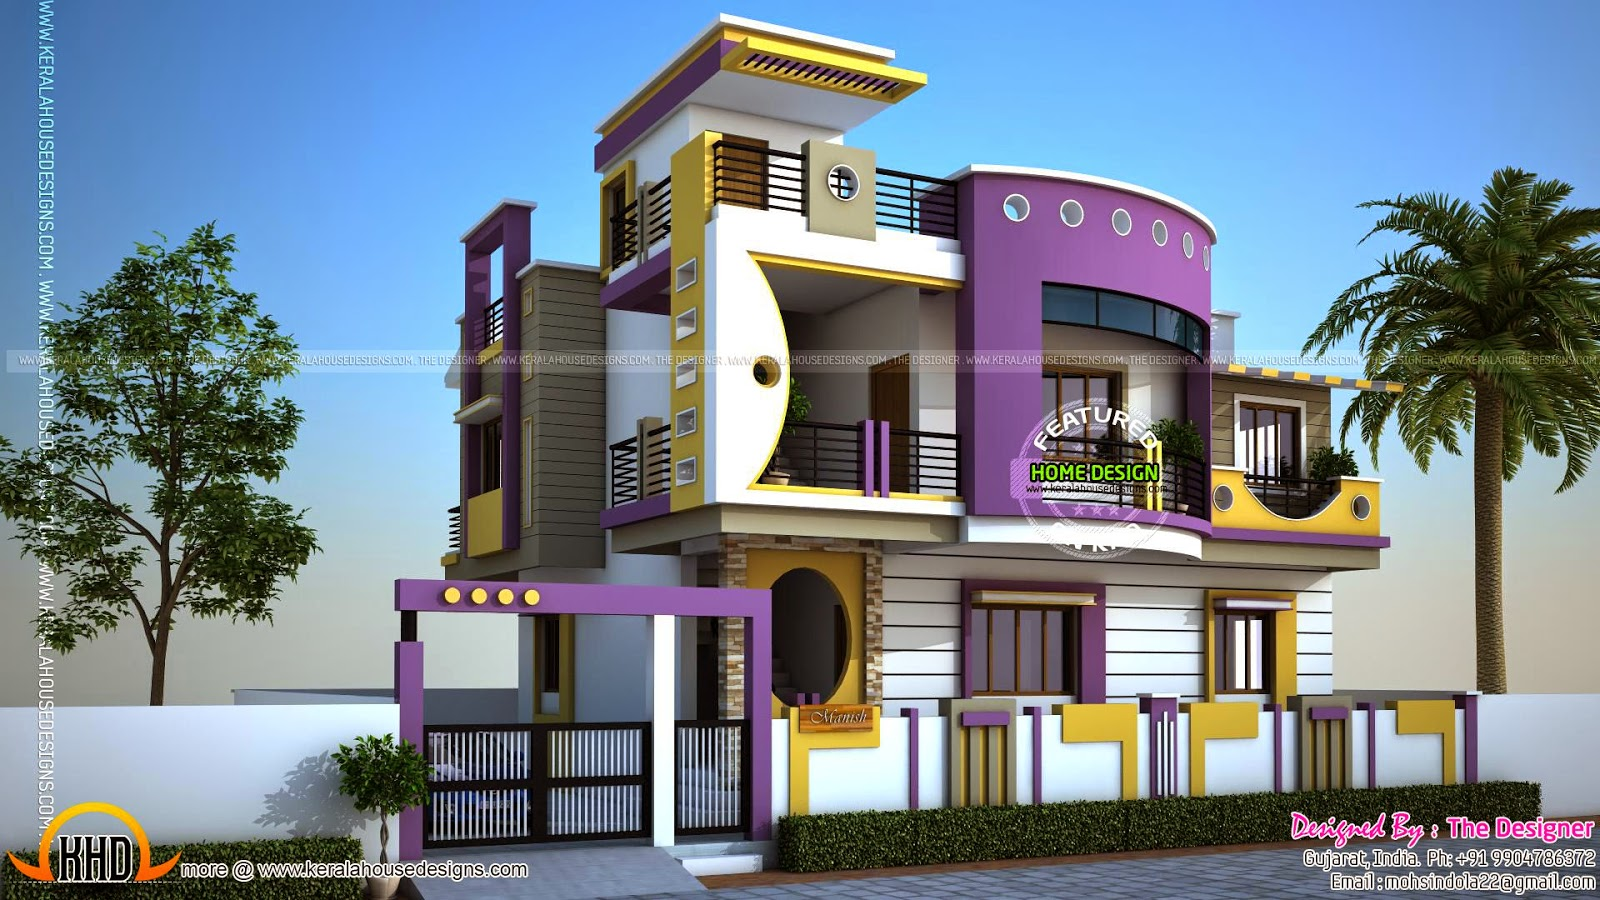 House exterior designs in contemporary style kerala home for Contemporary home design exterior